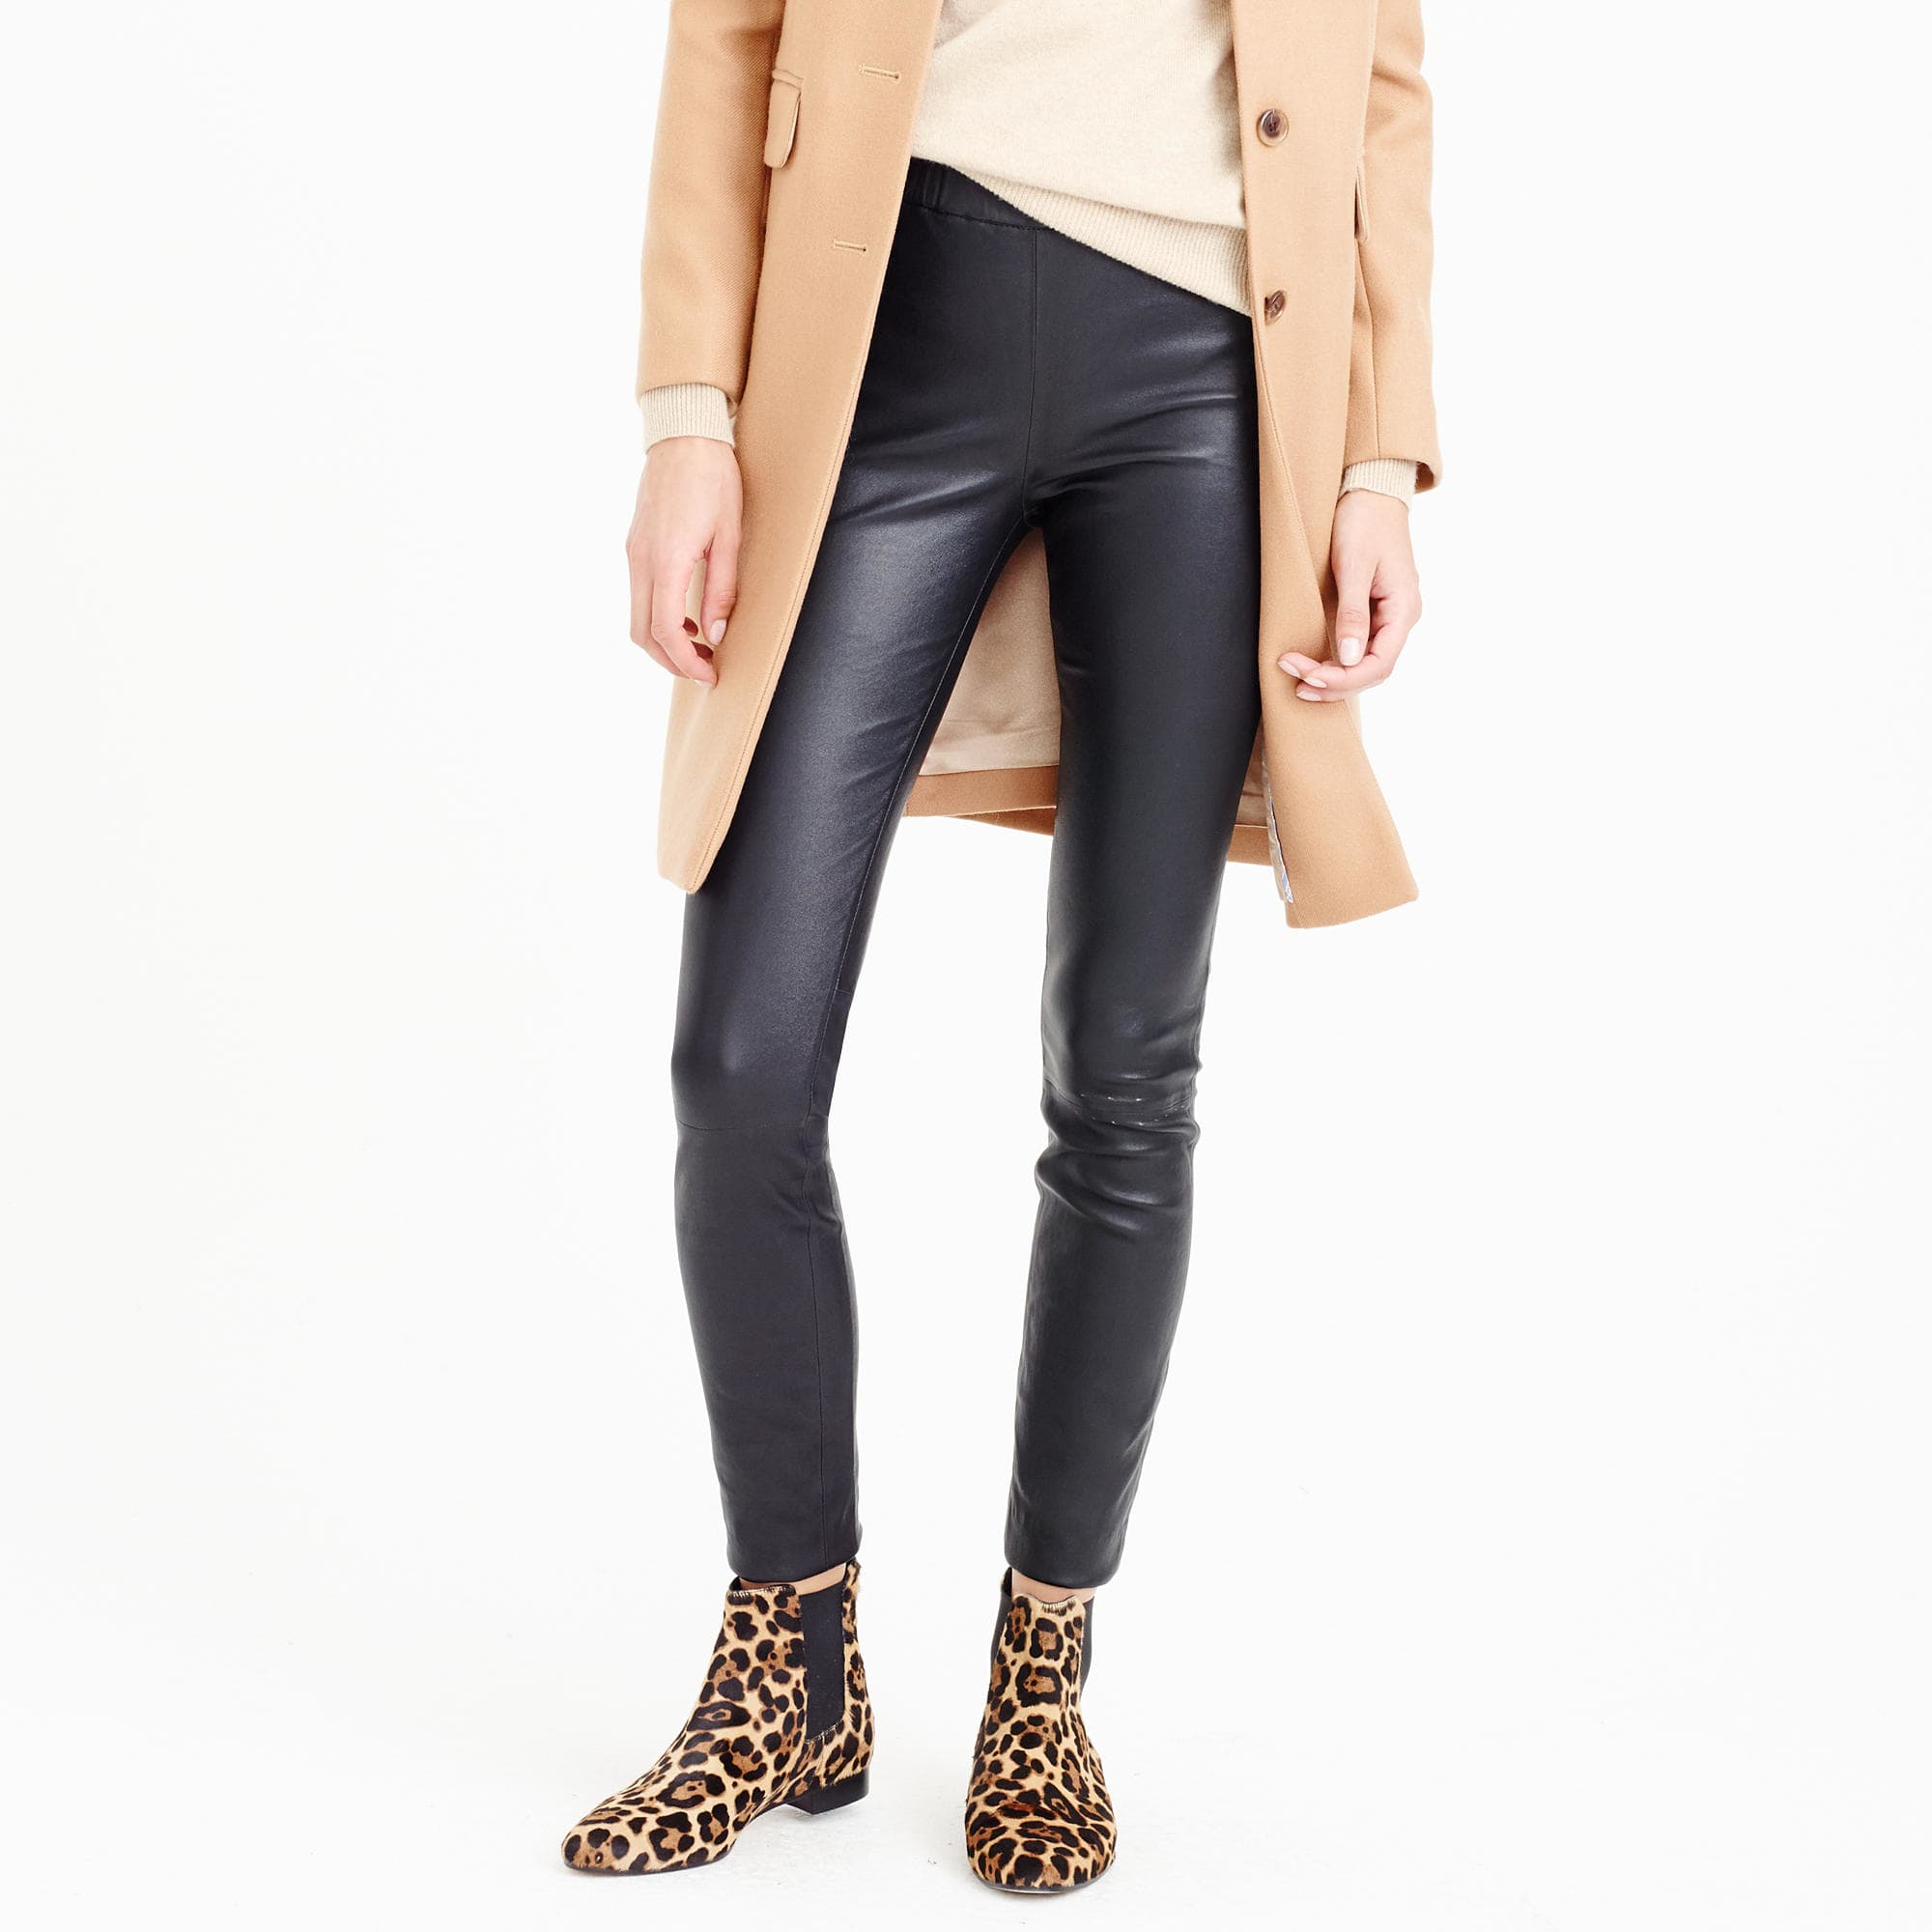 J Crew leather leggings